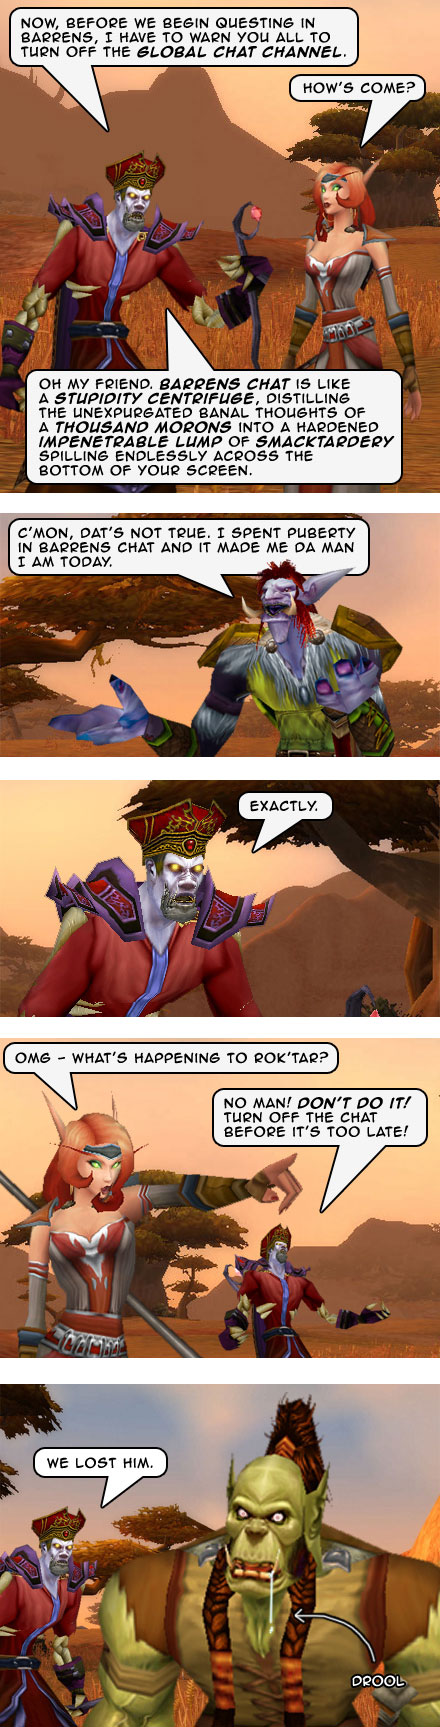 Part 4: Barrens Chat